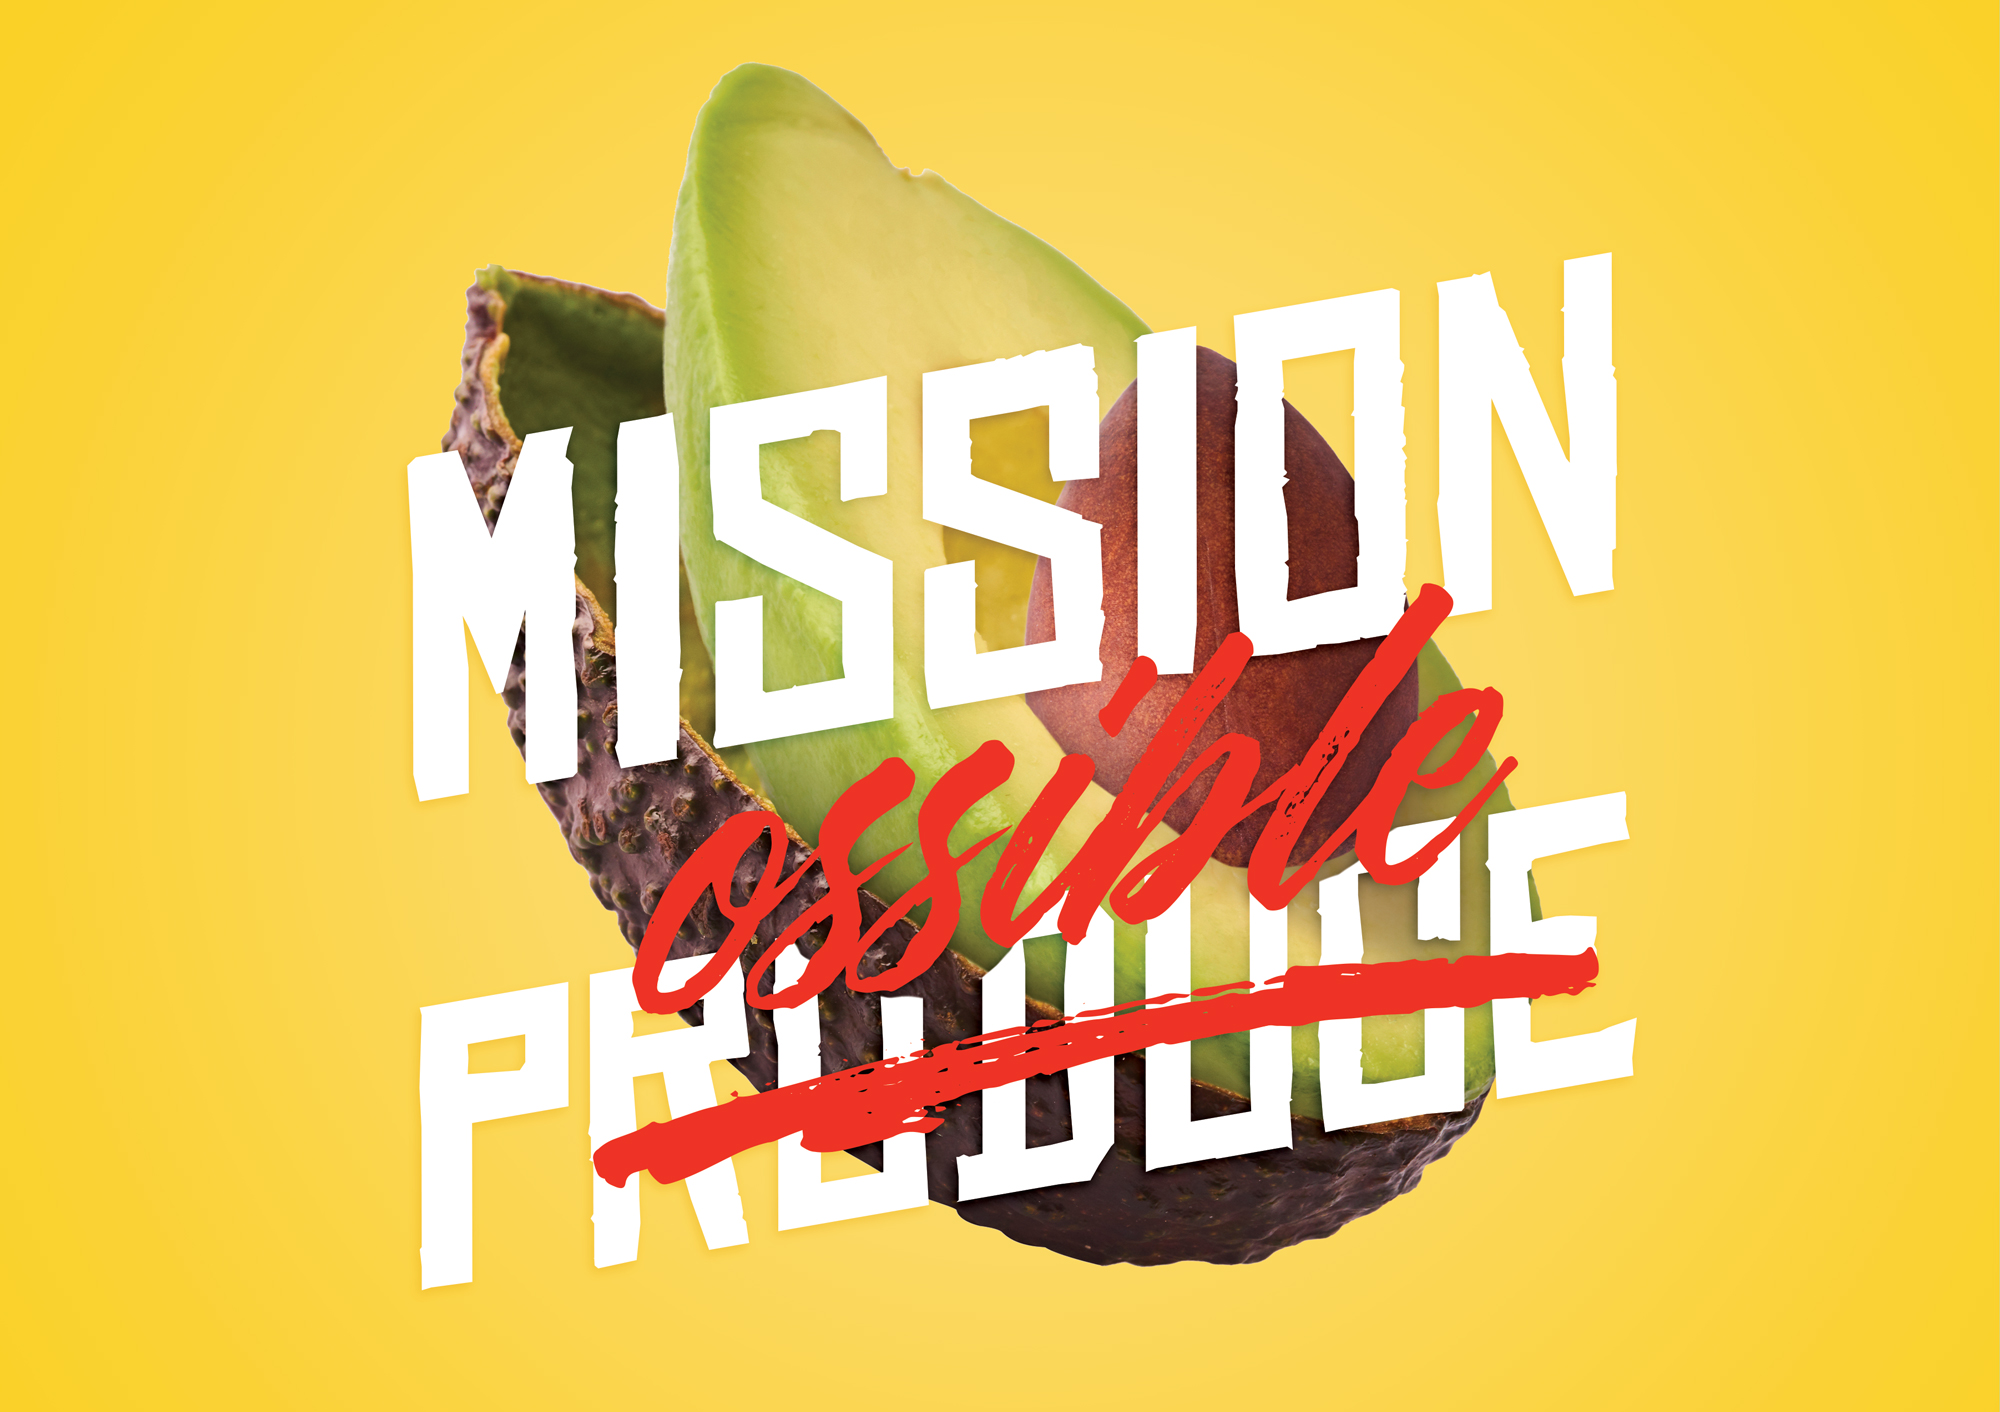 Mission P[ossible]roduce